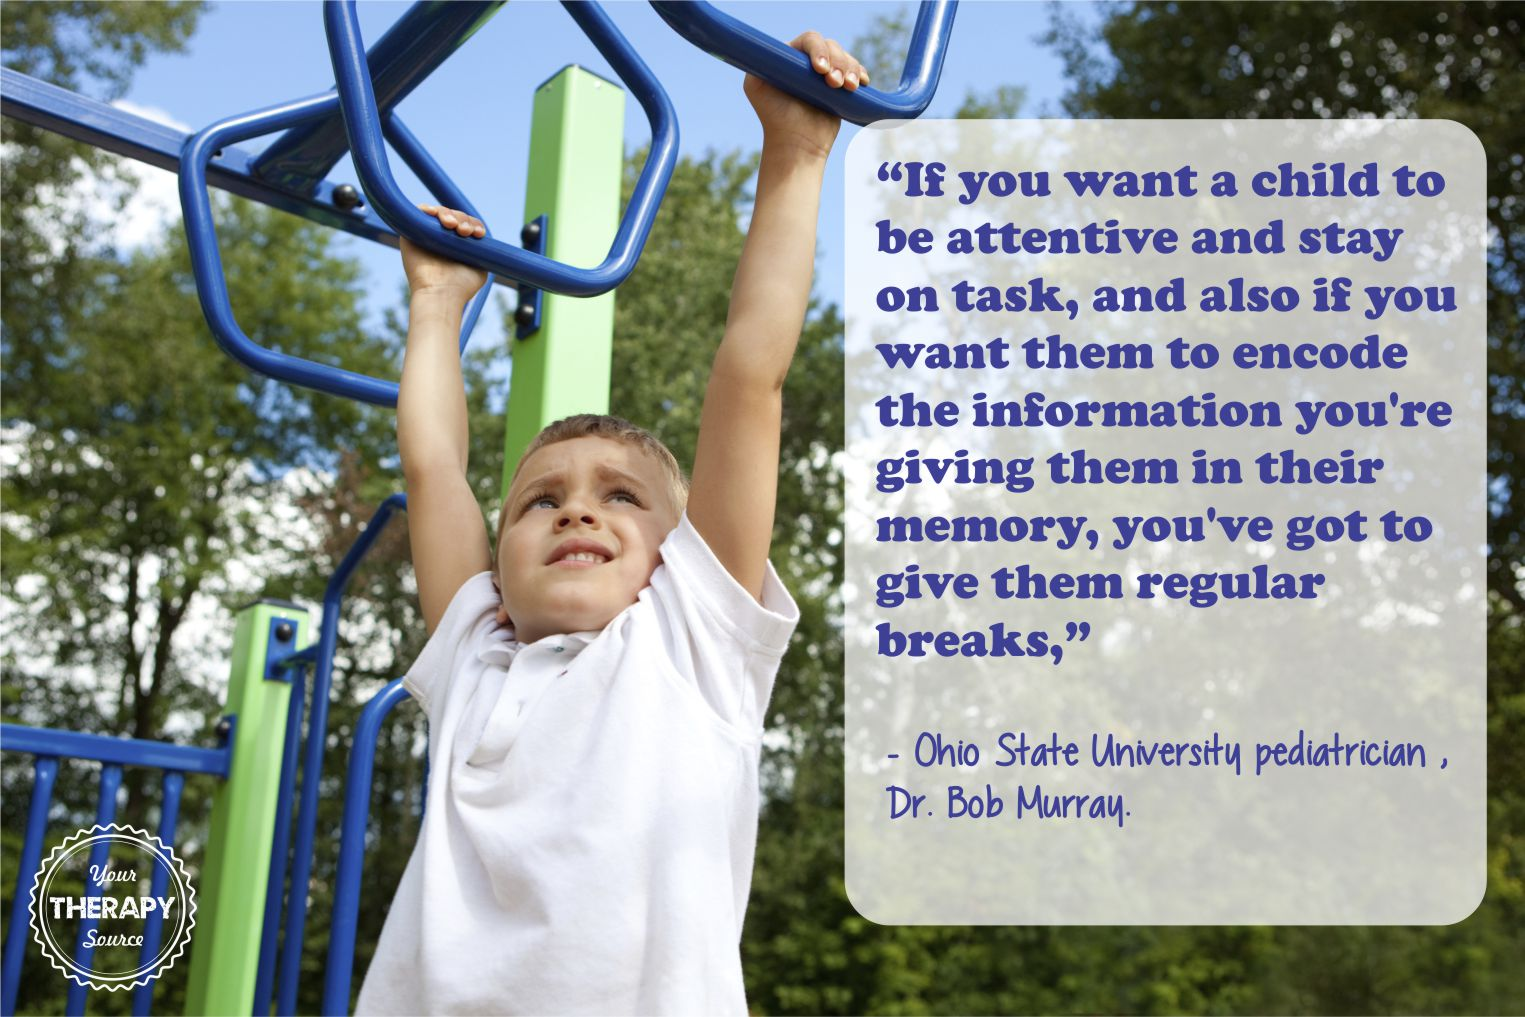 As school based therapists, we are often asked why is recess important? Often times we try to educate school staff on why withholding recess from students can be detrimental.